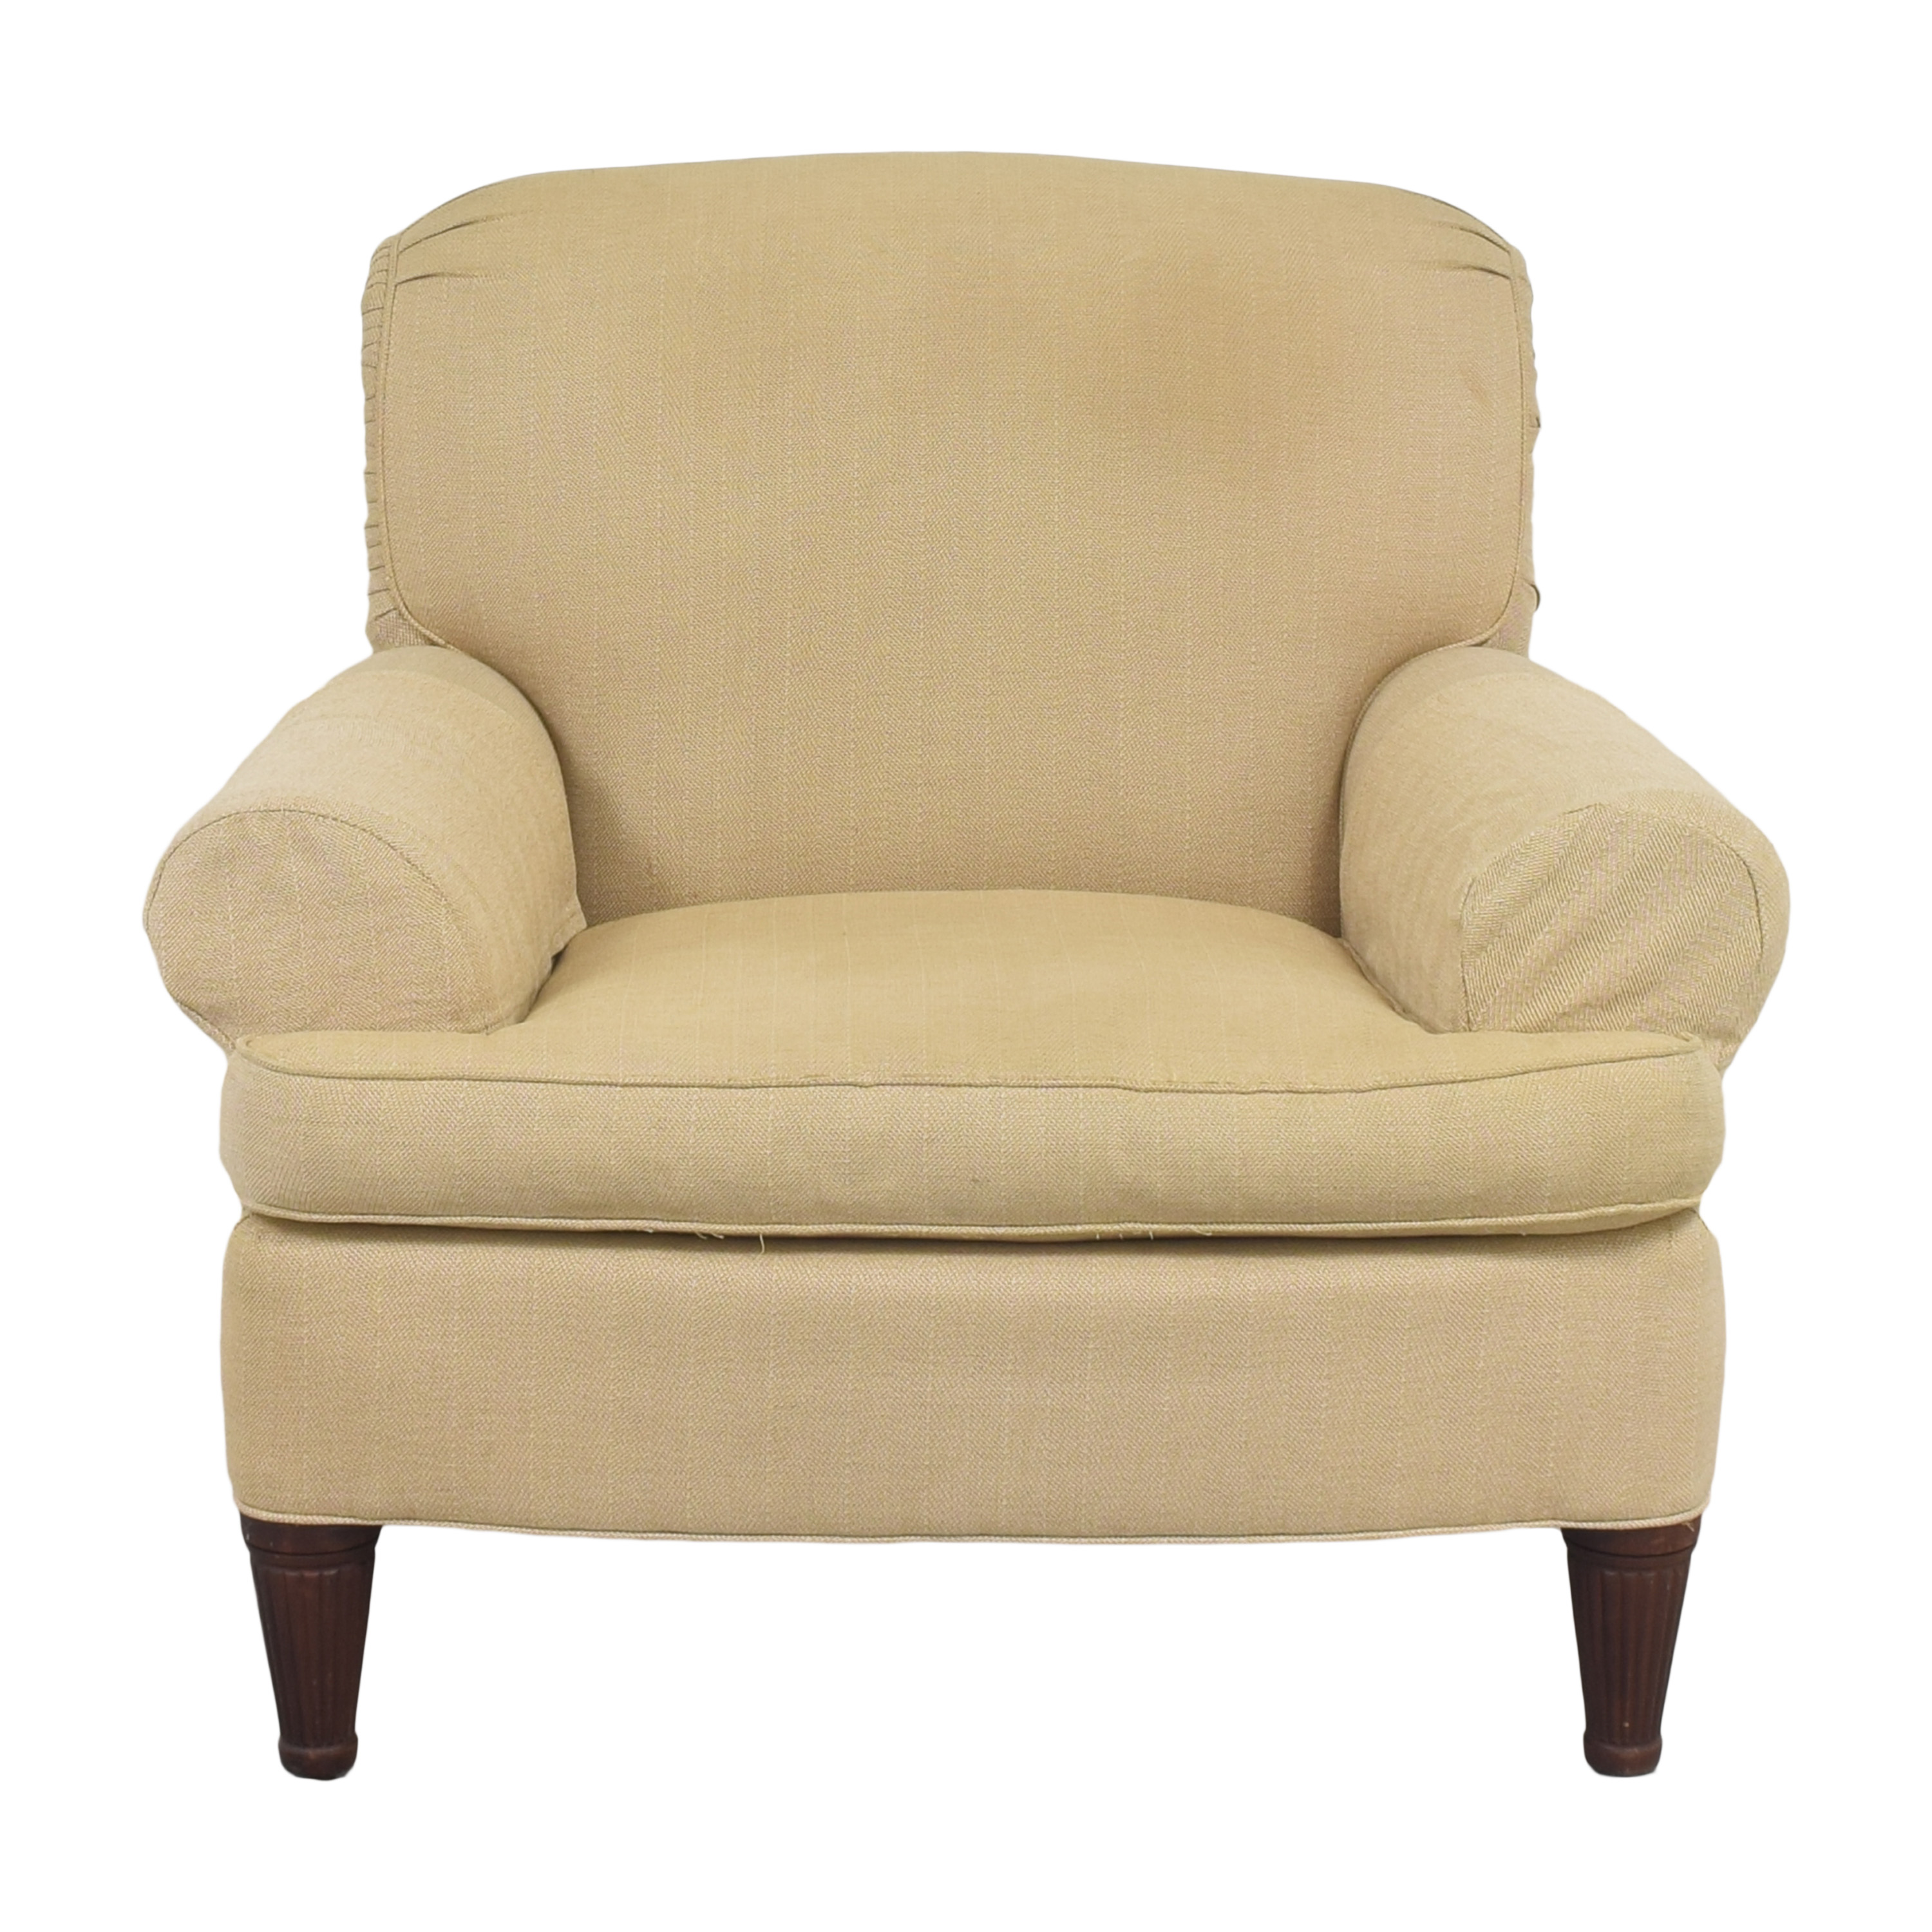 buy Ralph Lauren Home Accent Chair Ralph Lauren Home Chairs